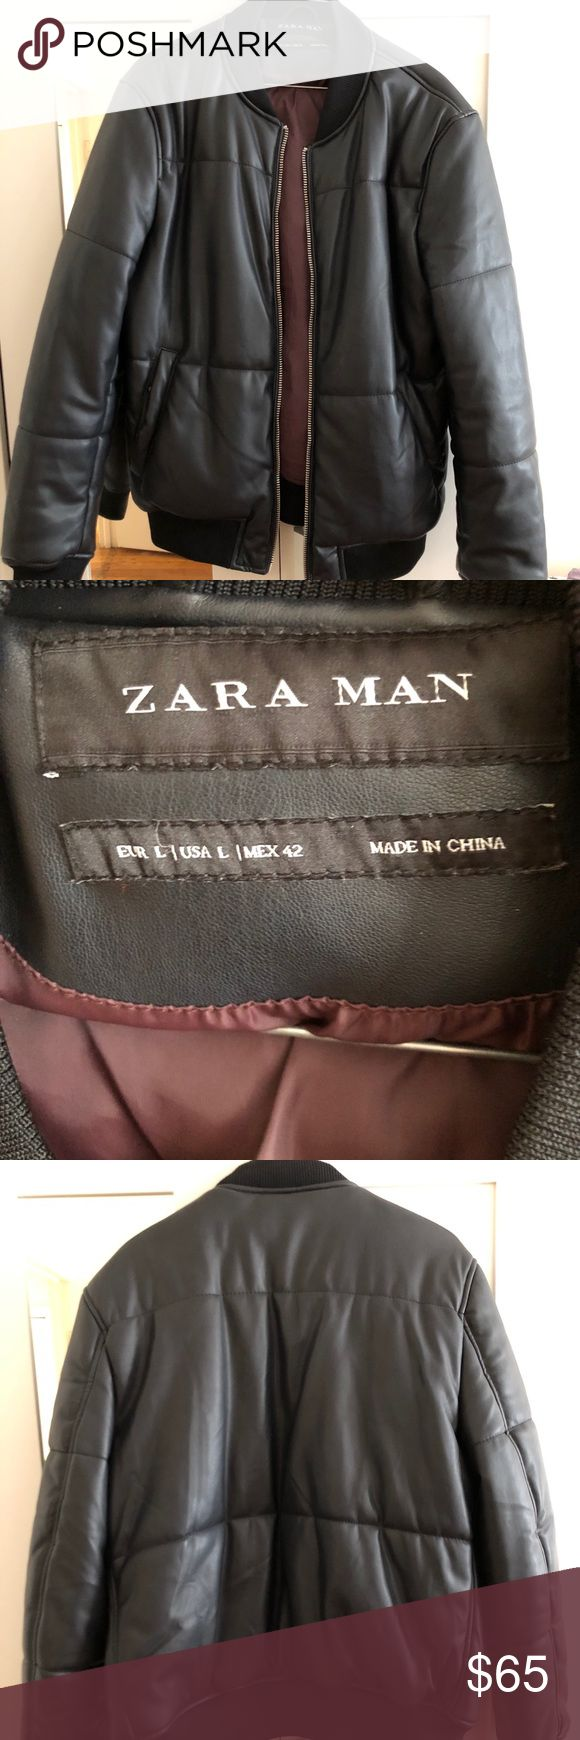 Zara Man Faux Leather Bomber Jacket Size large Zara Man Faux Leather Jacket  Great condition and great quality leather  worn once Thick and warm and stylish Zara Jackets & Coats Bomber & Varsity